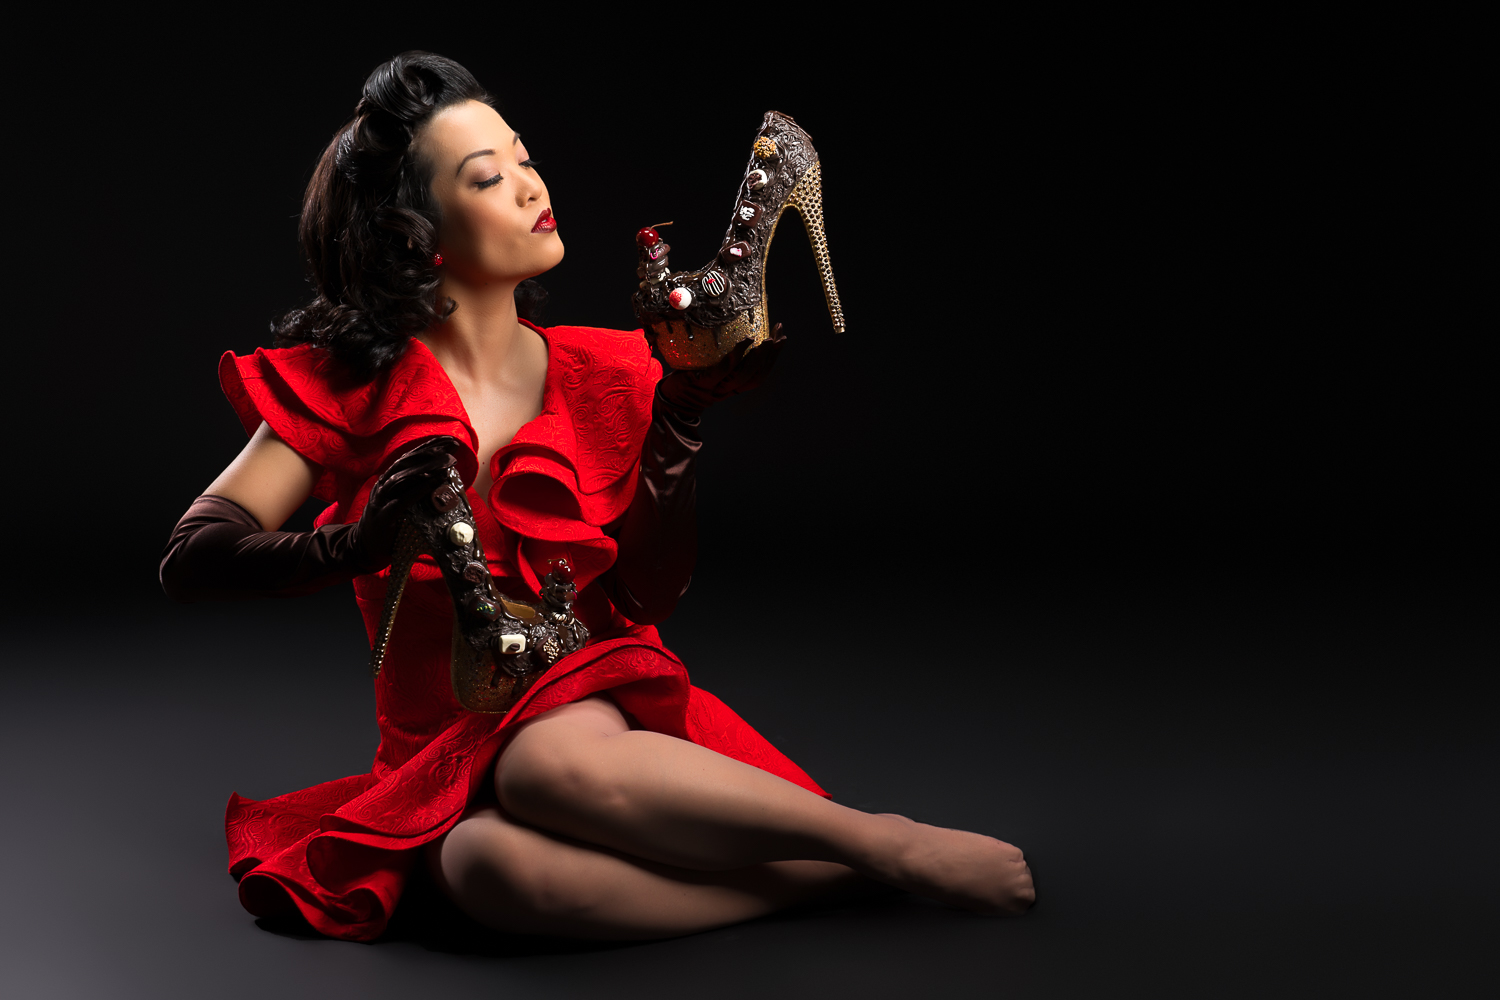 Marianne Cheesecake is modelling for Nina Marie Shoes. Photo by Henny Sep.